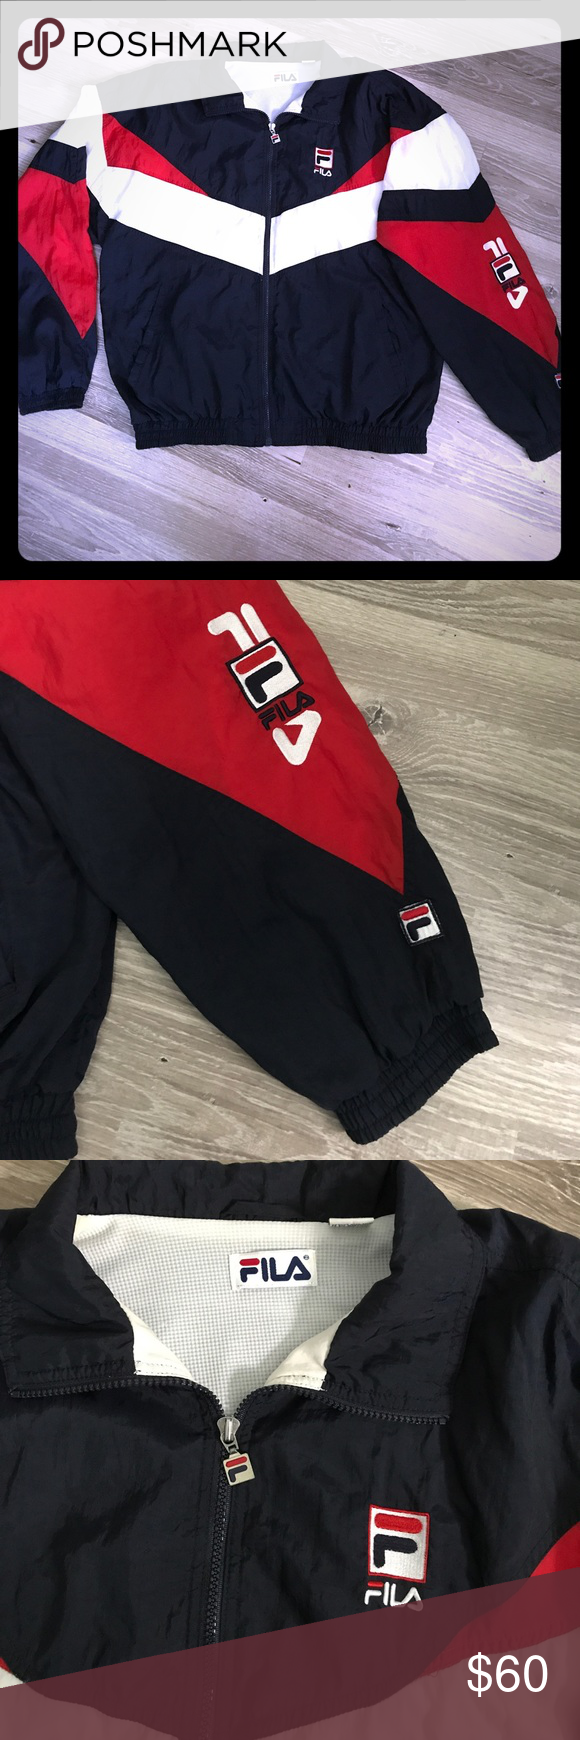 294c188db201 Fila vintage windbreaker Vintage 90s Fila red white and blue for your dude!  So much flare for people to stare at.10 10 Fila Jackets   Coats Windbreakers